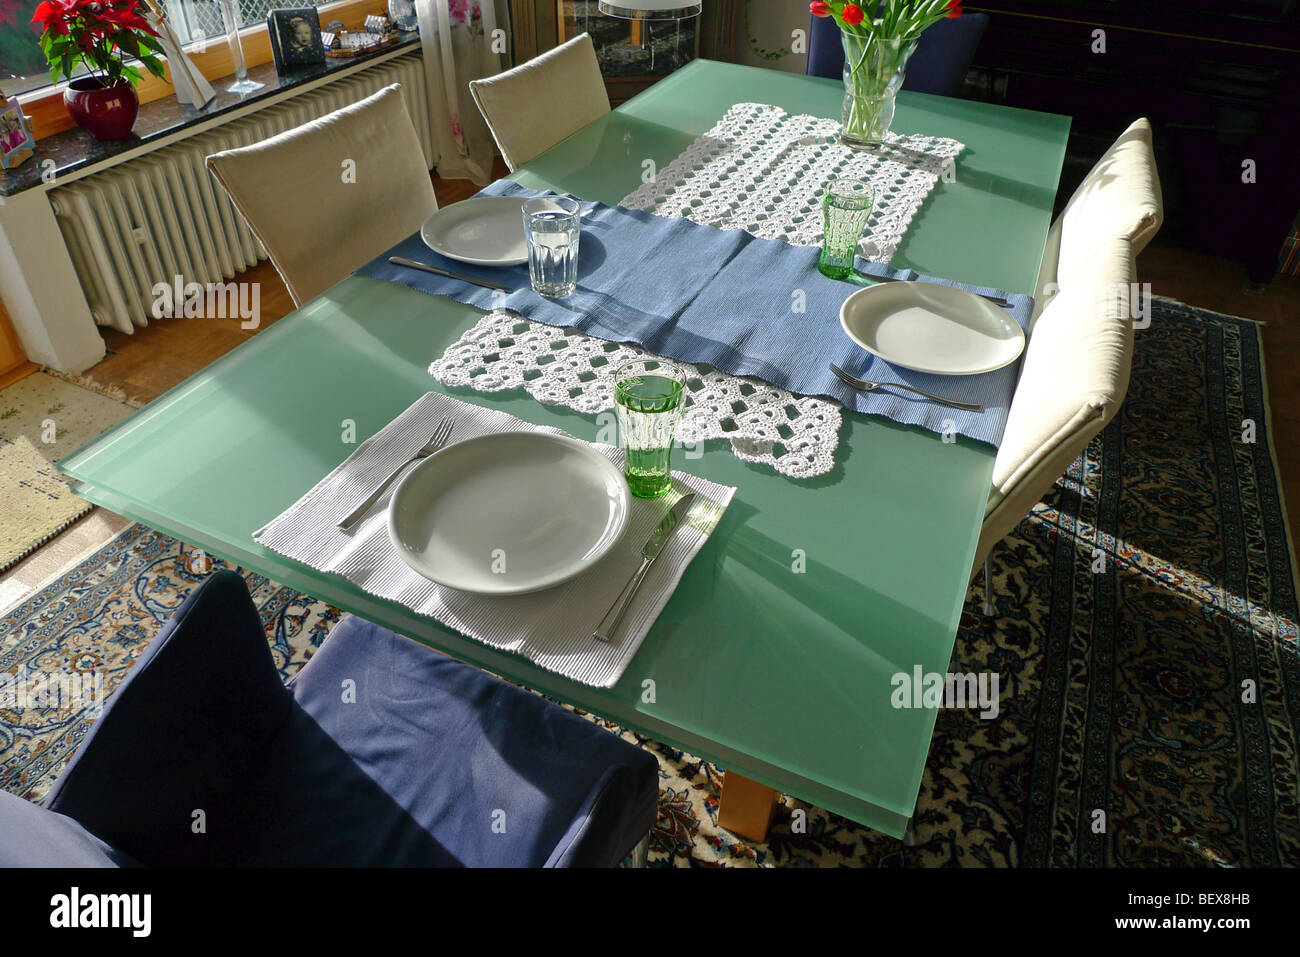 Table decoration. - Stock Image